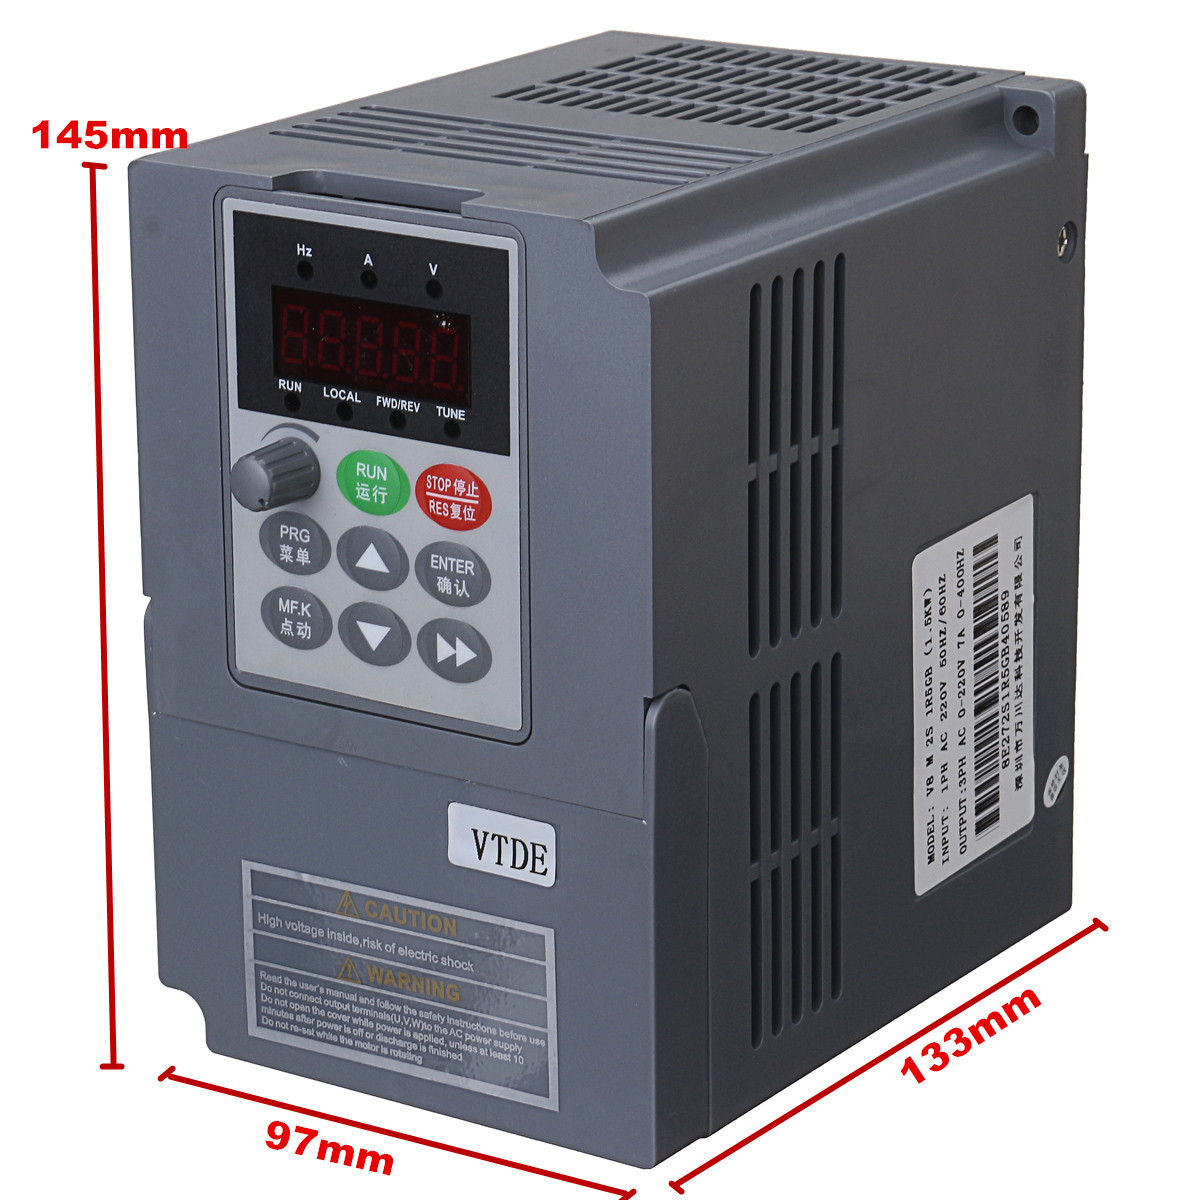 single phase inverter View and download solis single phase inverter installation and operation manual online single phase inverter inverter pdf manual download.